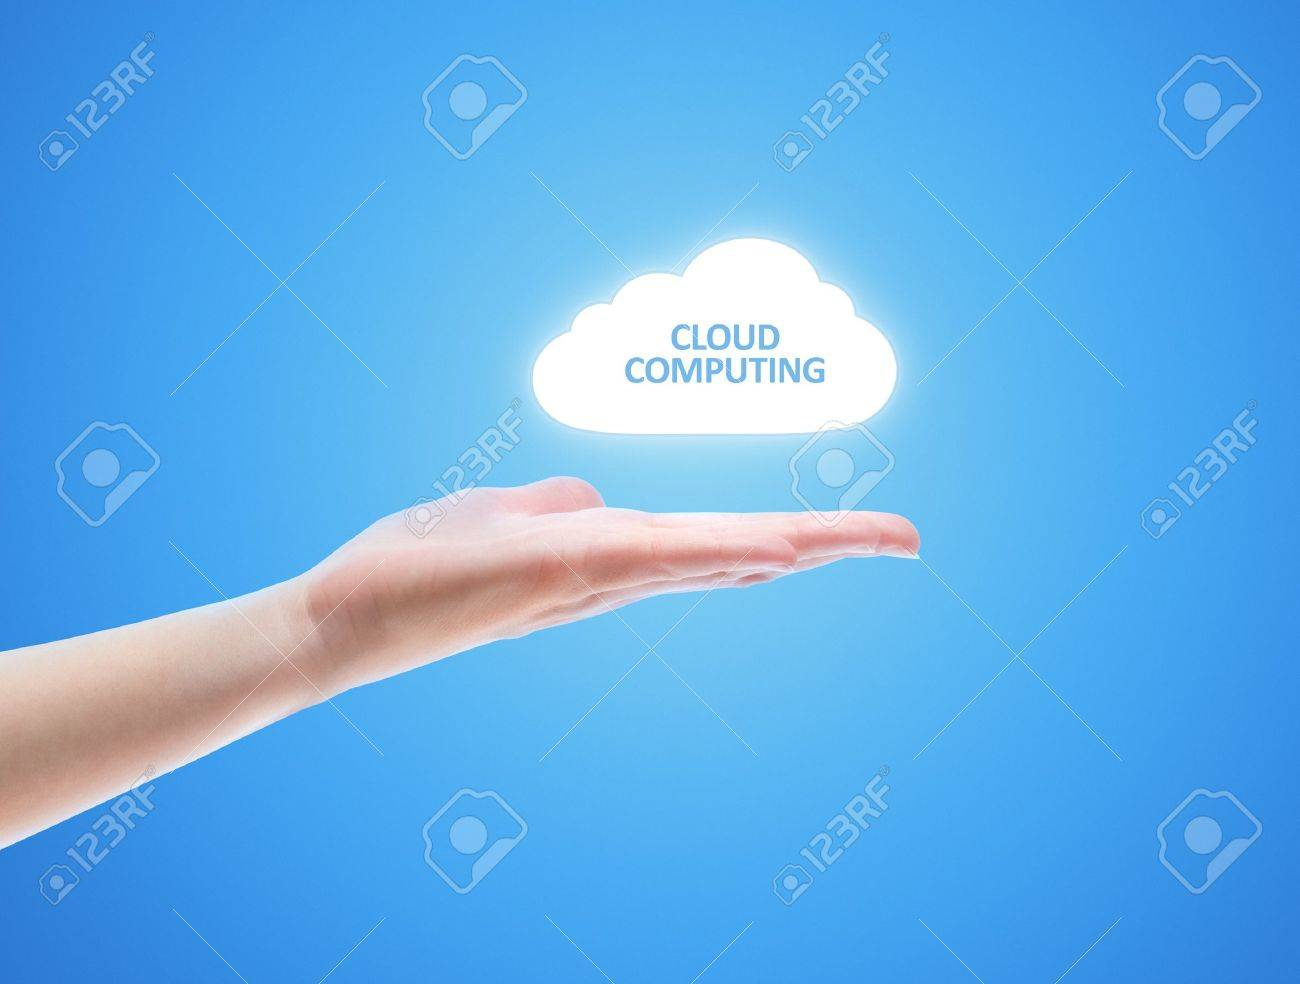 Woman hand share the cloud against blue background. Concept image on cloud computing theme with copy space. Stock Photo - 12068509